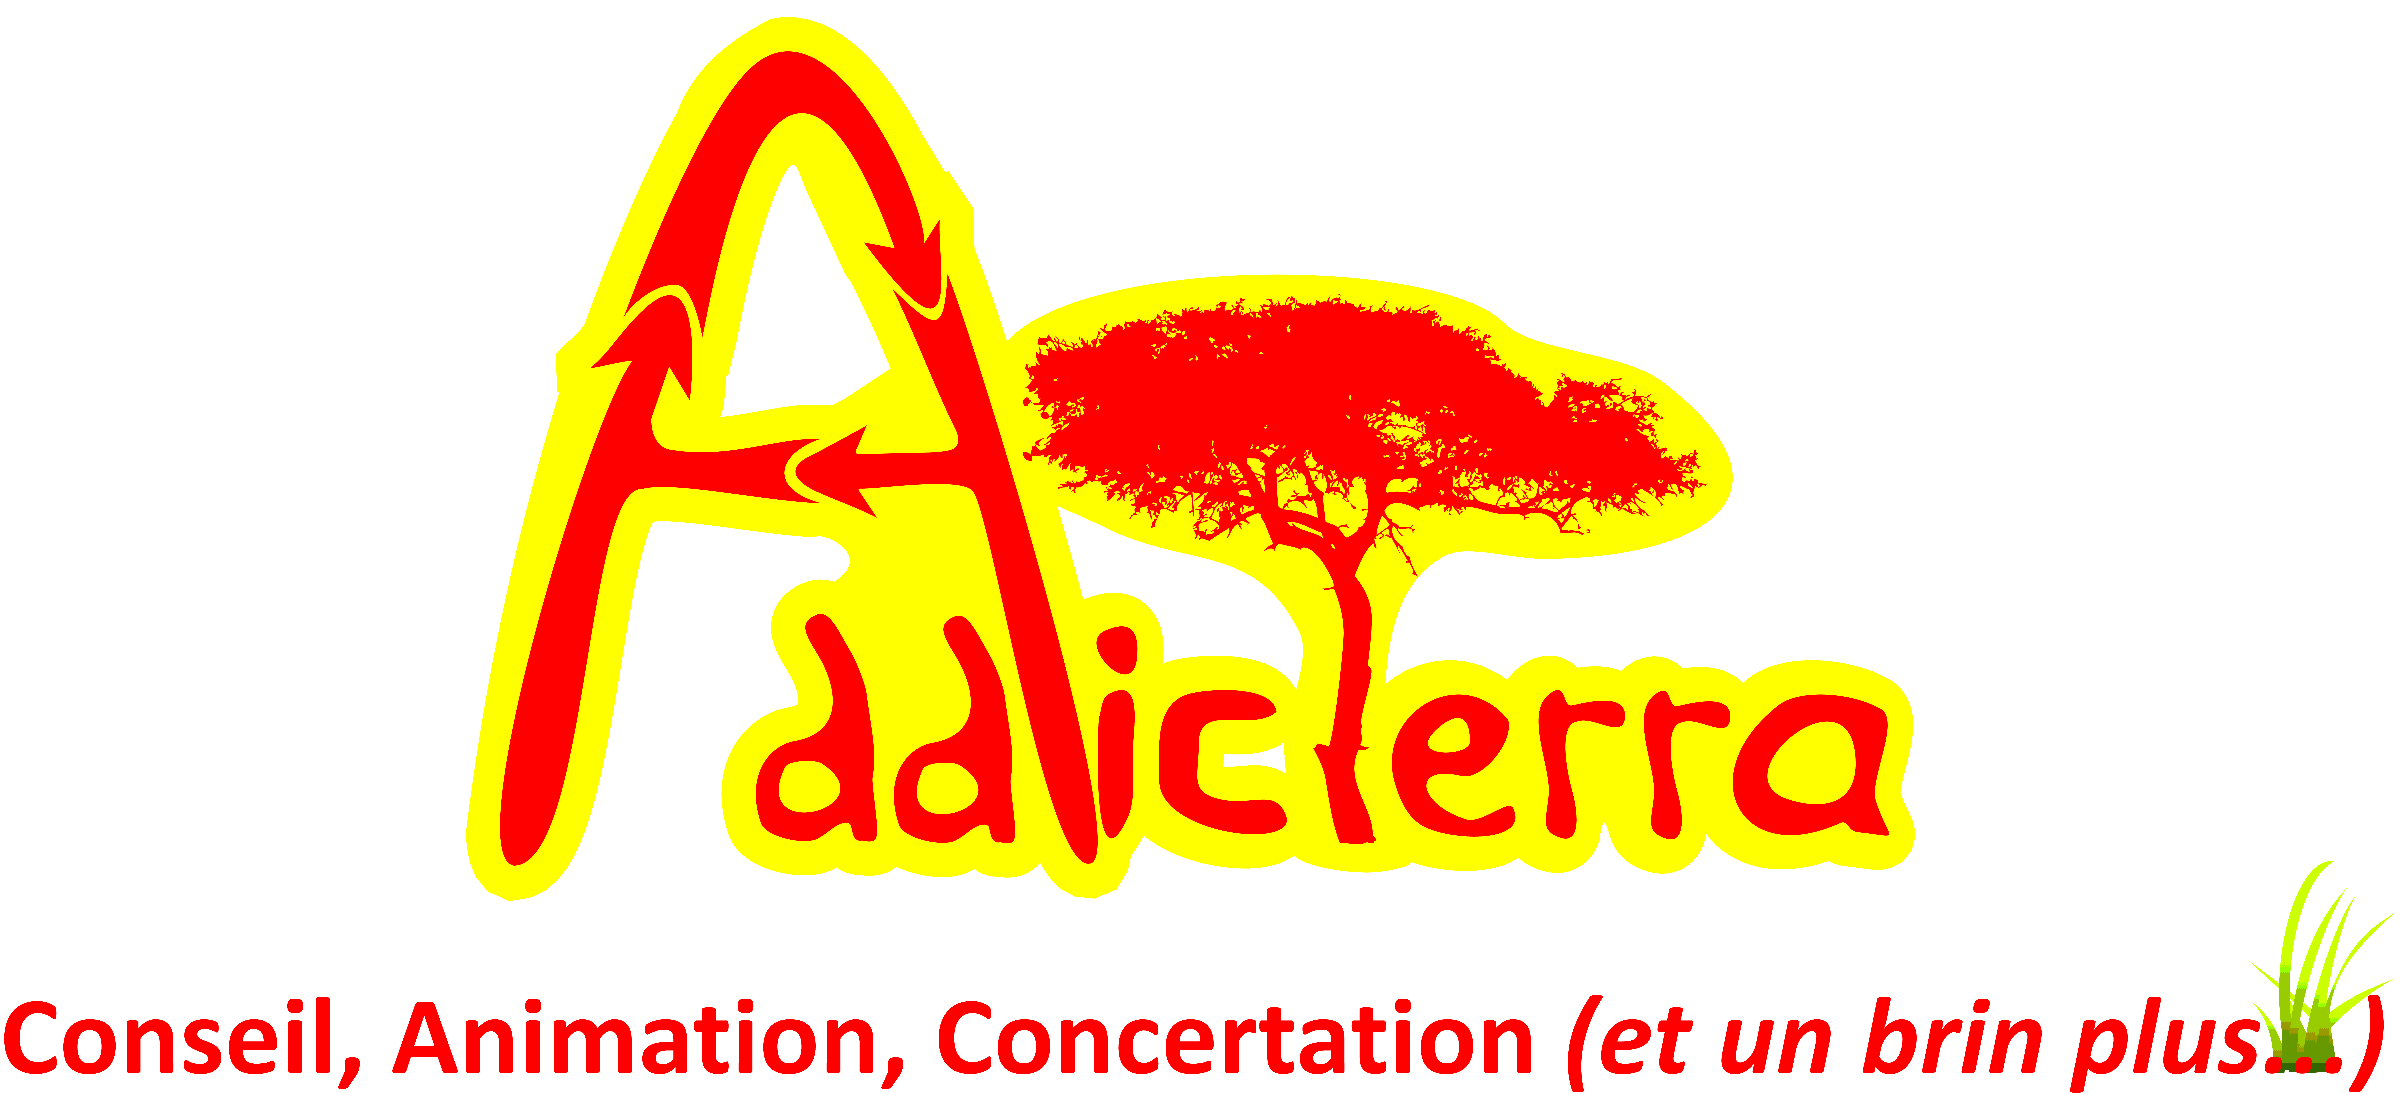 addictera_logo